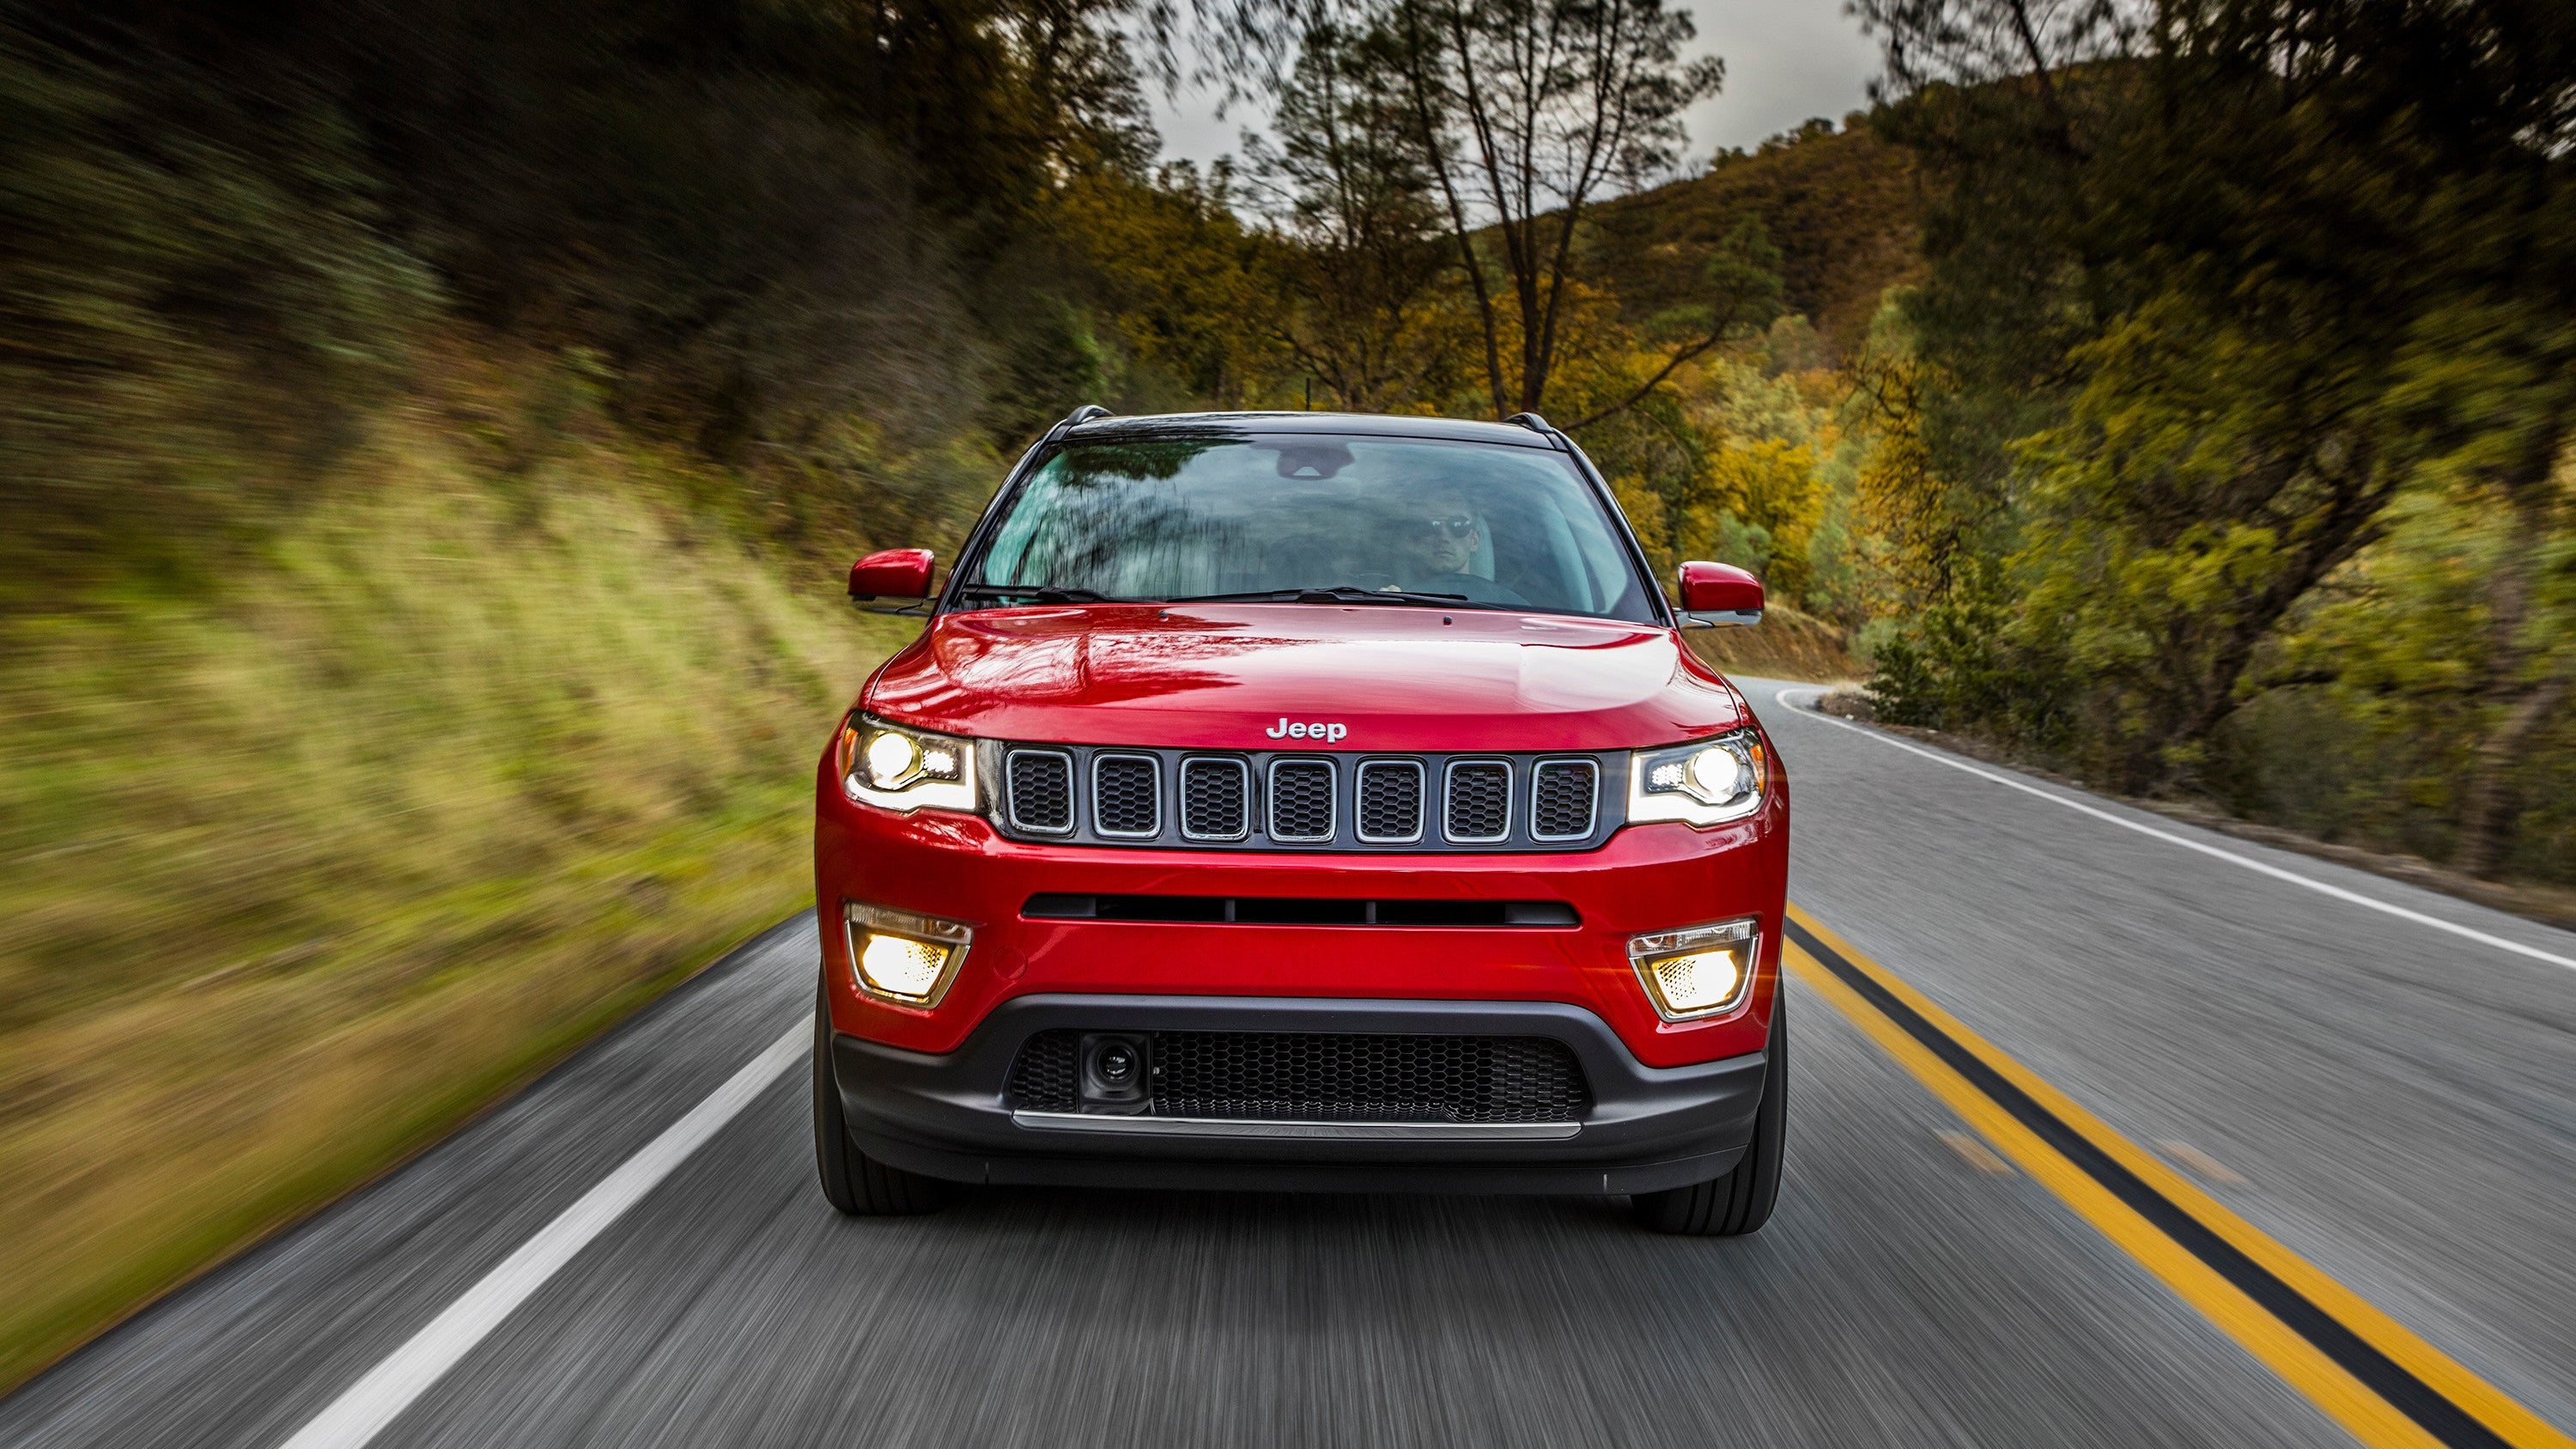 Jeep Will Show Off Three Plug-In Hybrid Models At CES With A New 4xe Badge